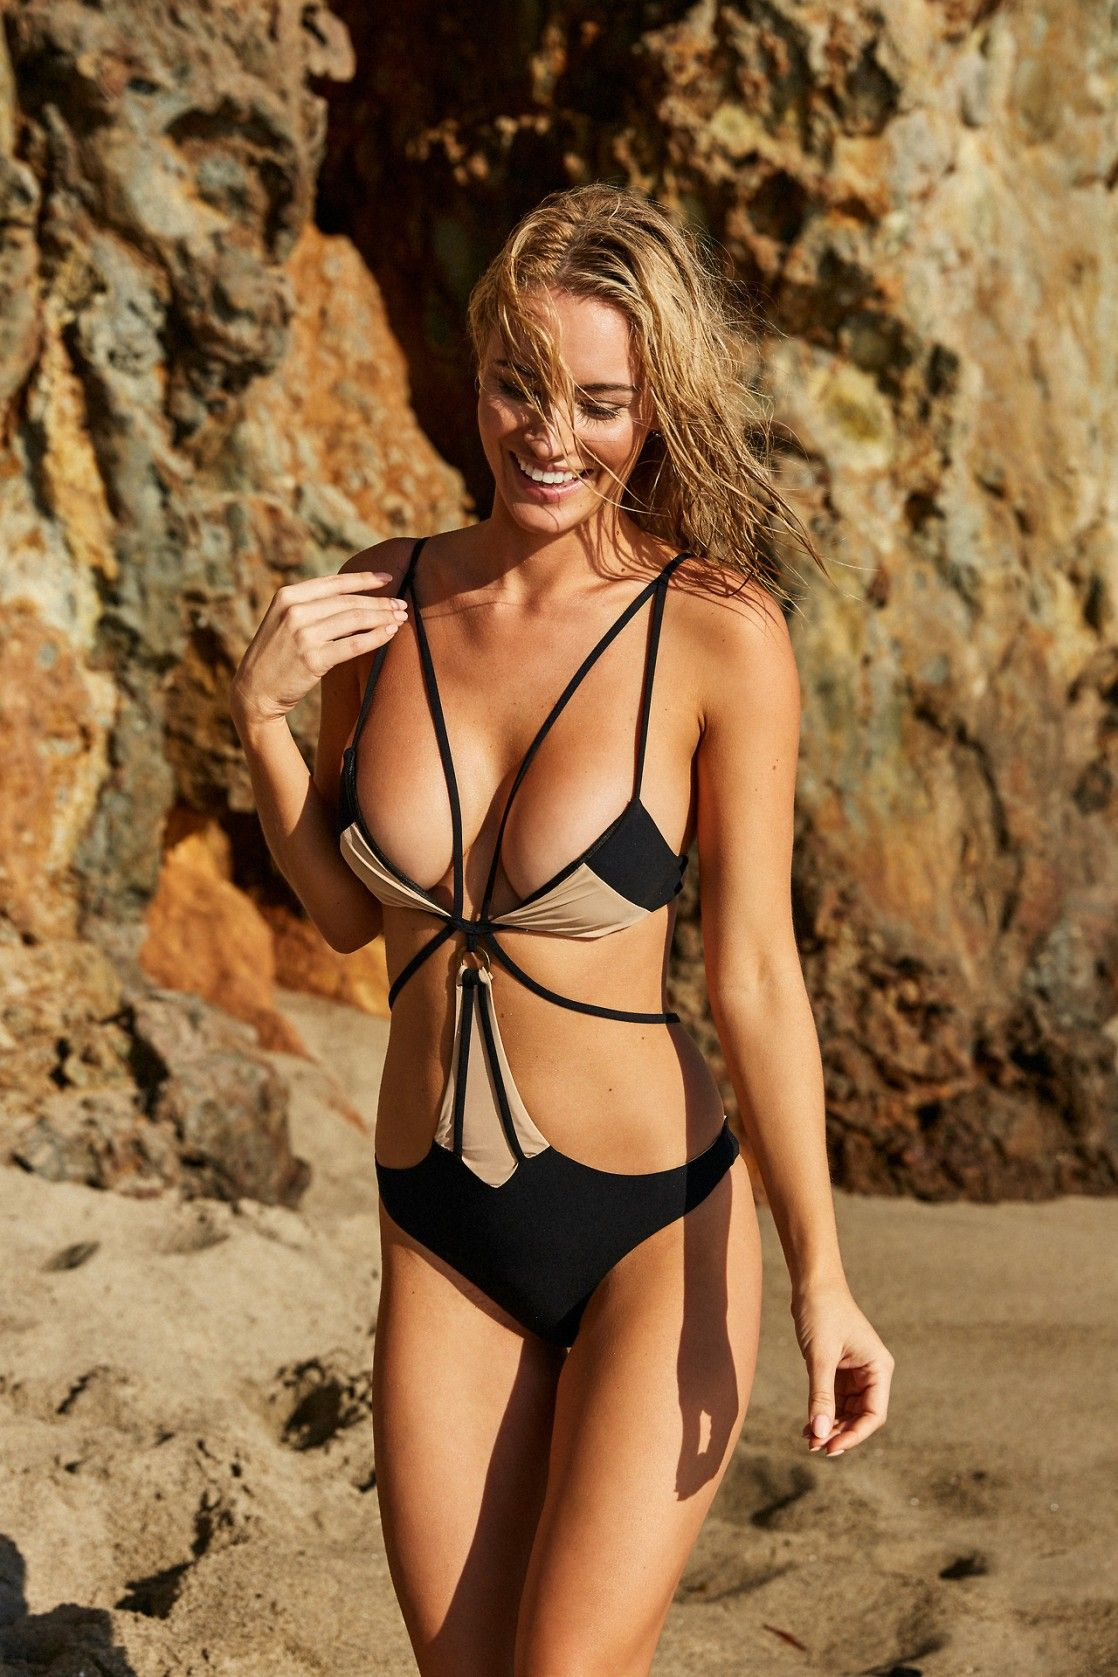 2019 Bryana Holly naked (94 foto and video), Ass, Cleavage, Instagram, panties 2006